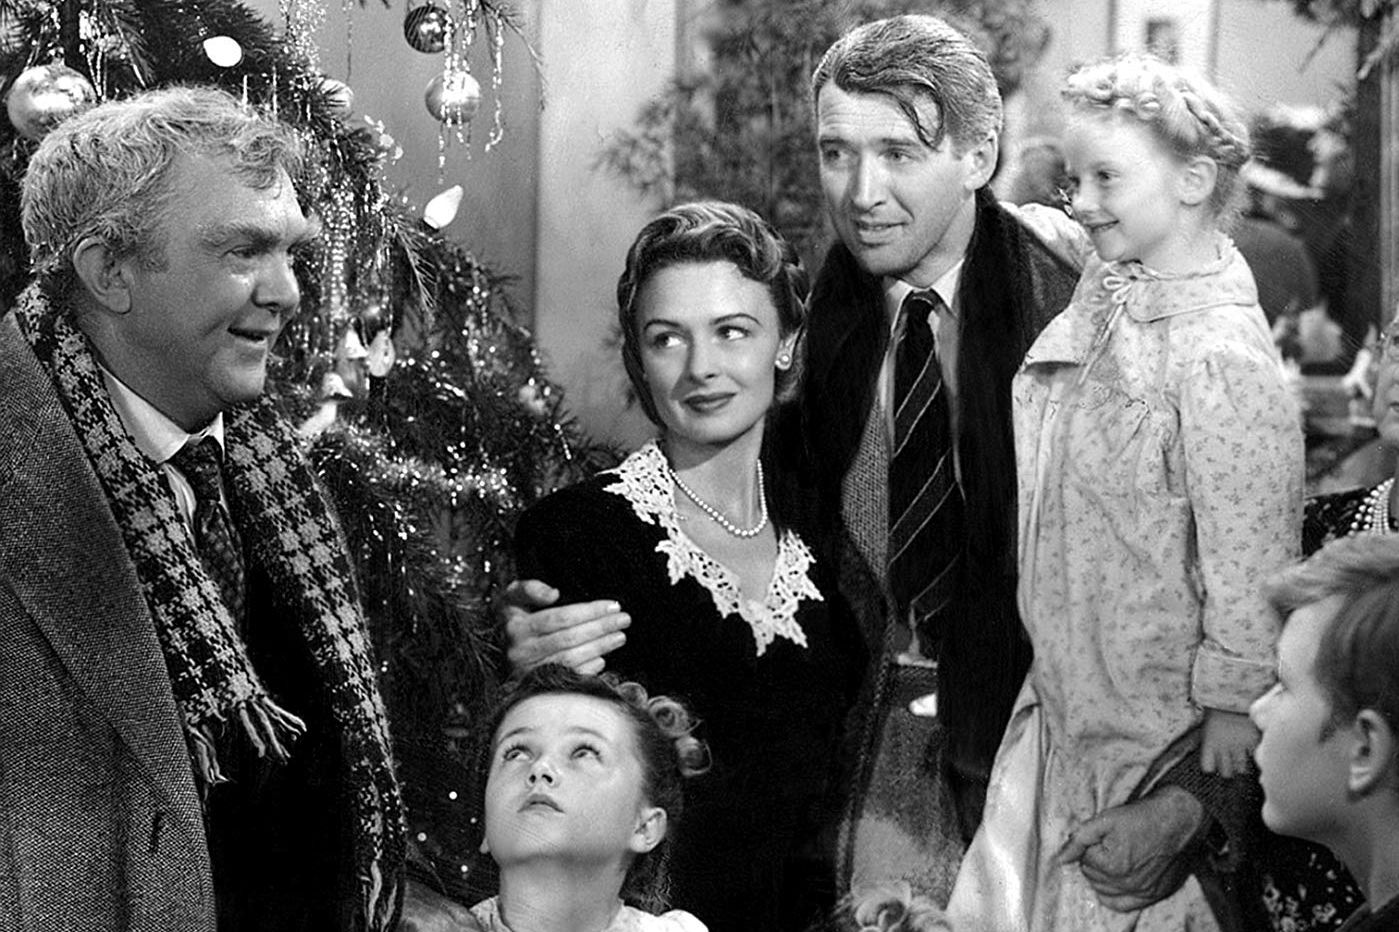 12 Things You Didn't Know About 'It's a Wonderful Life'